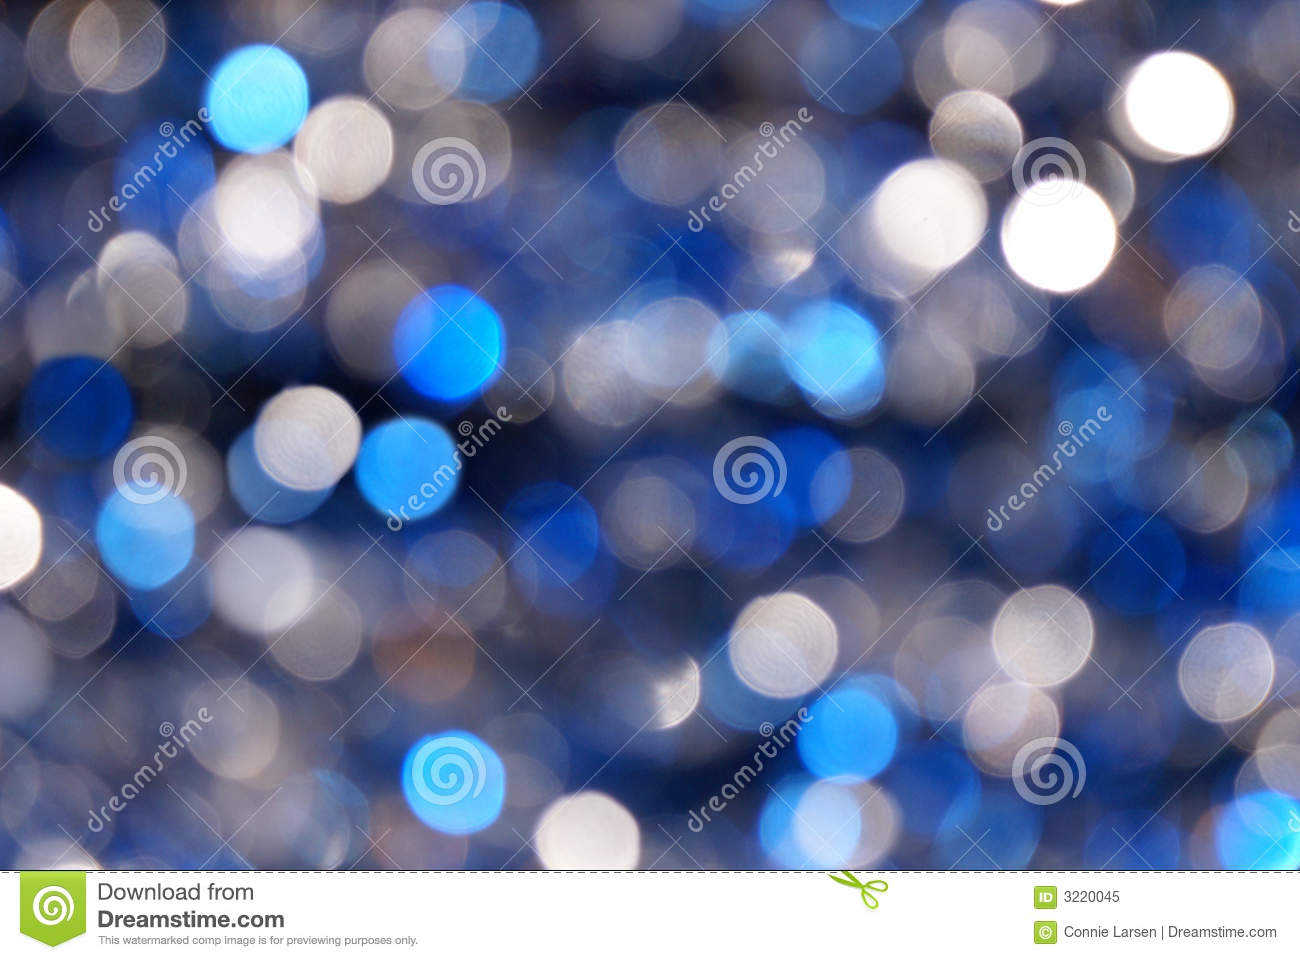 Blue Amp Silver Blur Background Royalty Free Stock Photo